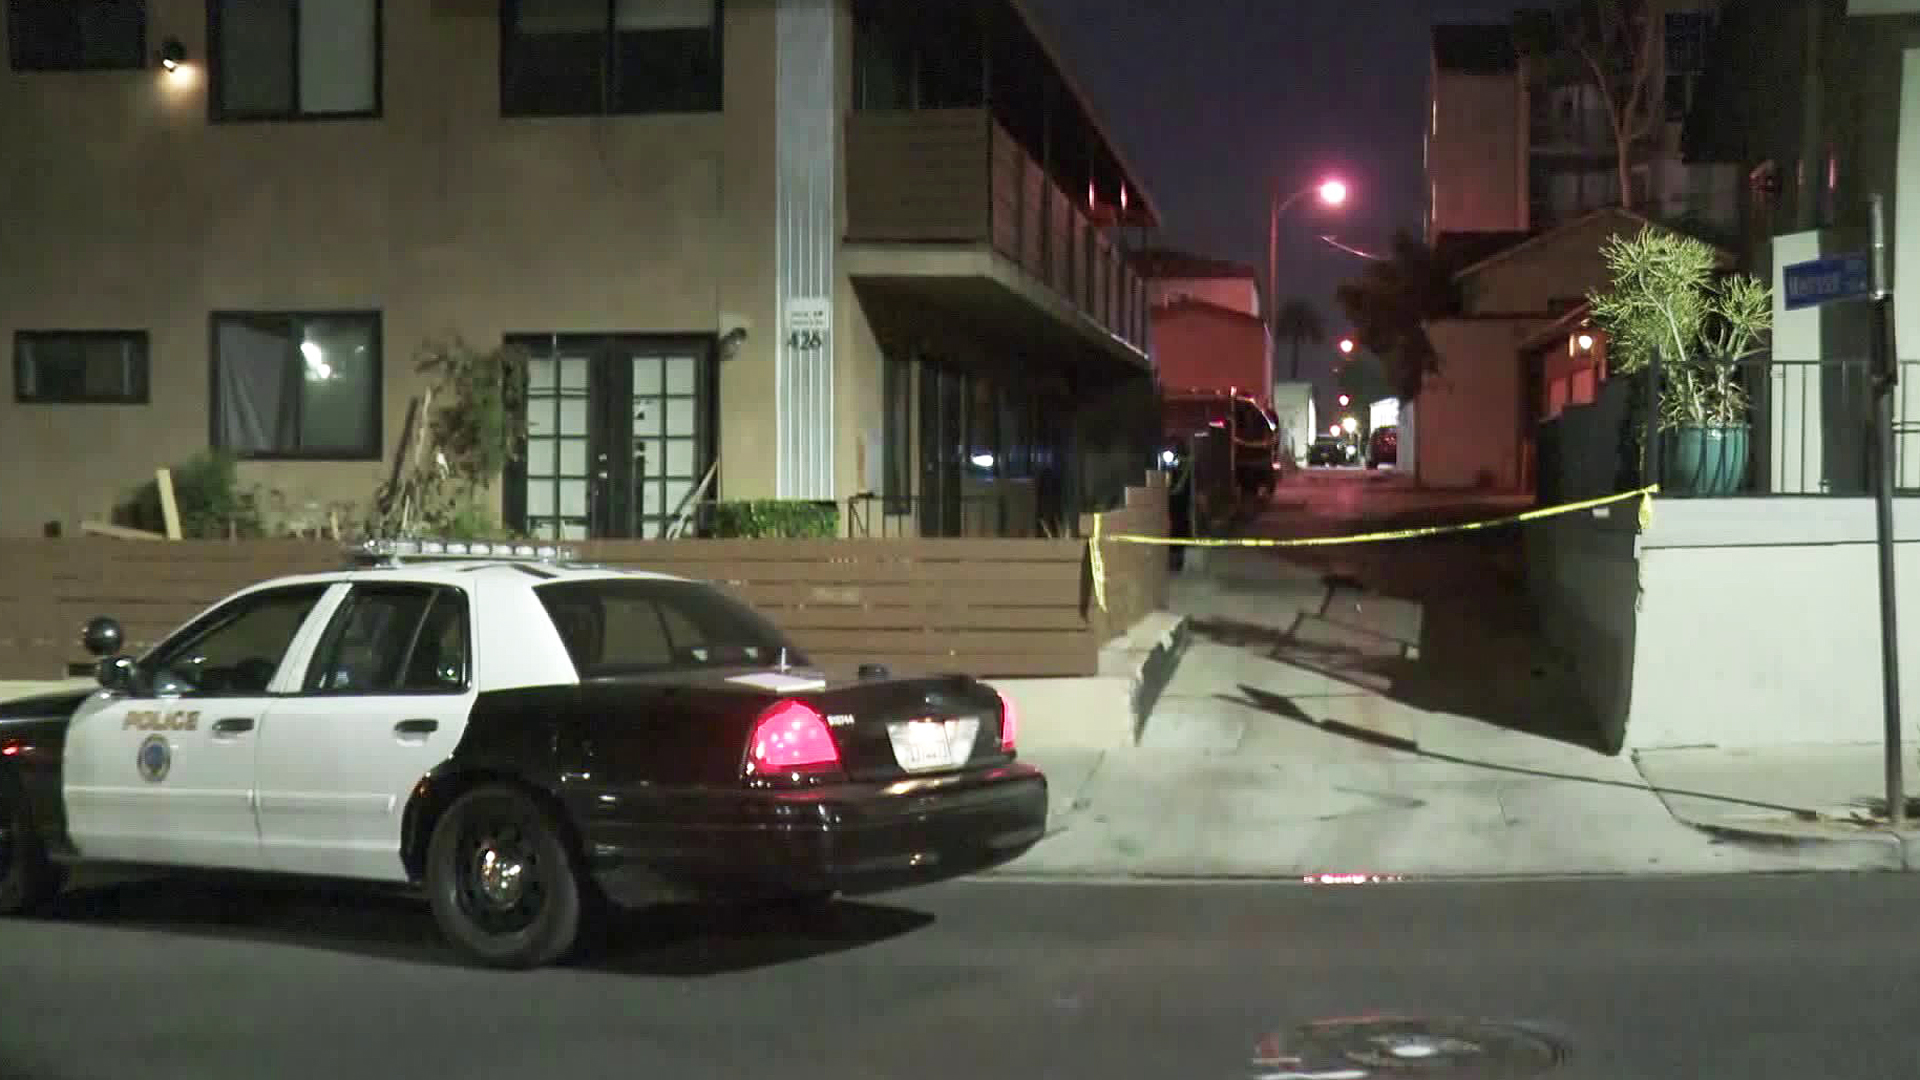 Police investigate a shooting in Long Beach on Sept. 4, 2019. (Credit: KTLA)